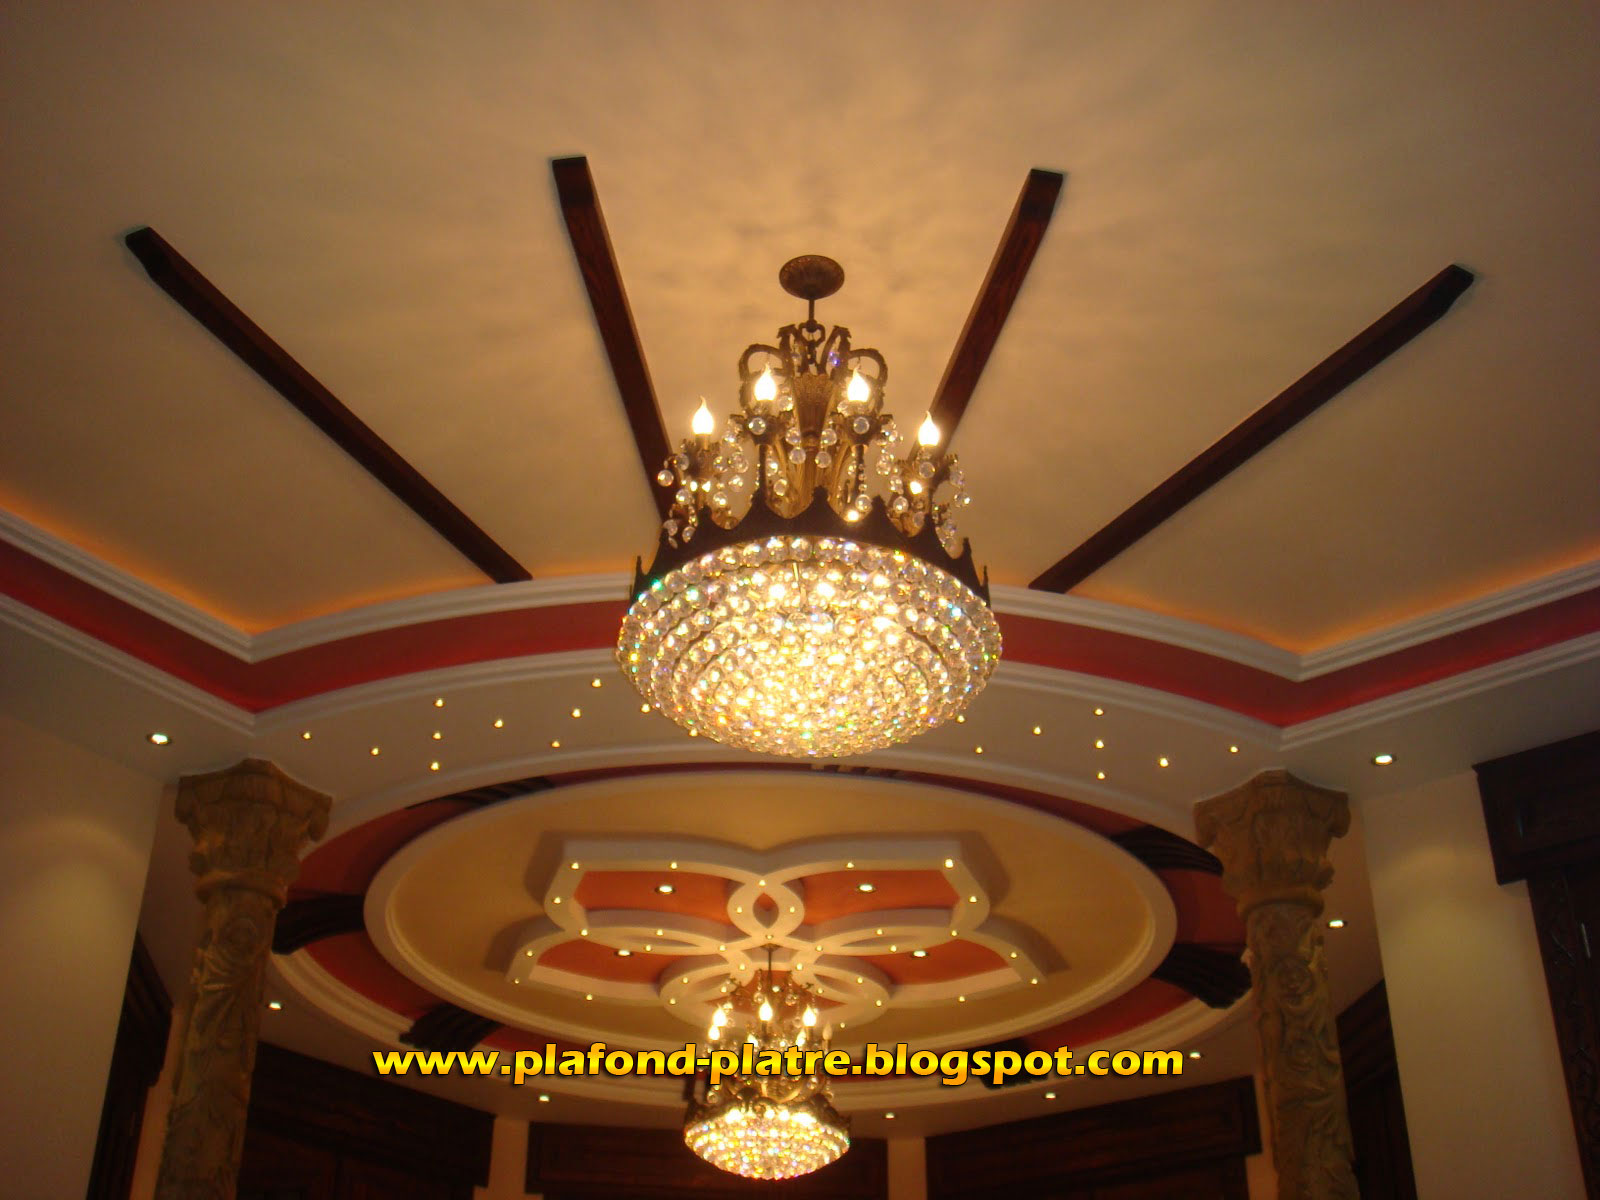 Boutique salon marocain 2016 2017 decor faux plafond for Decoration platre salon marocain